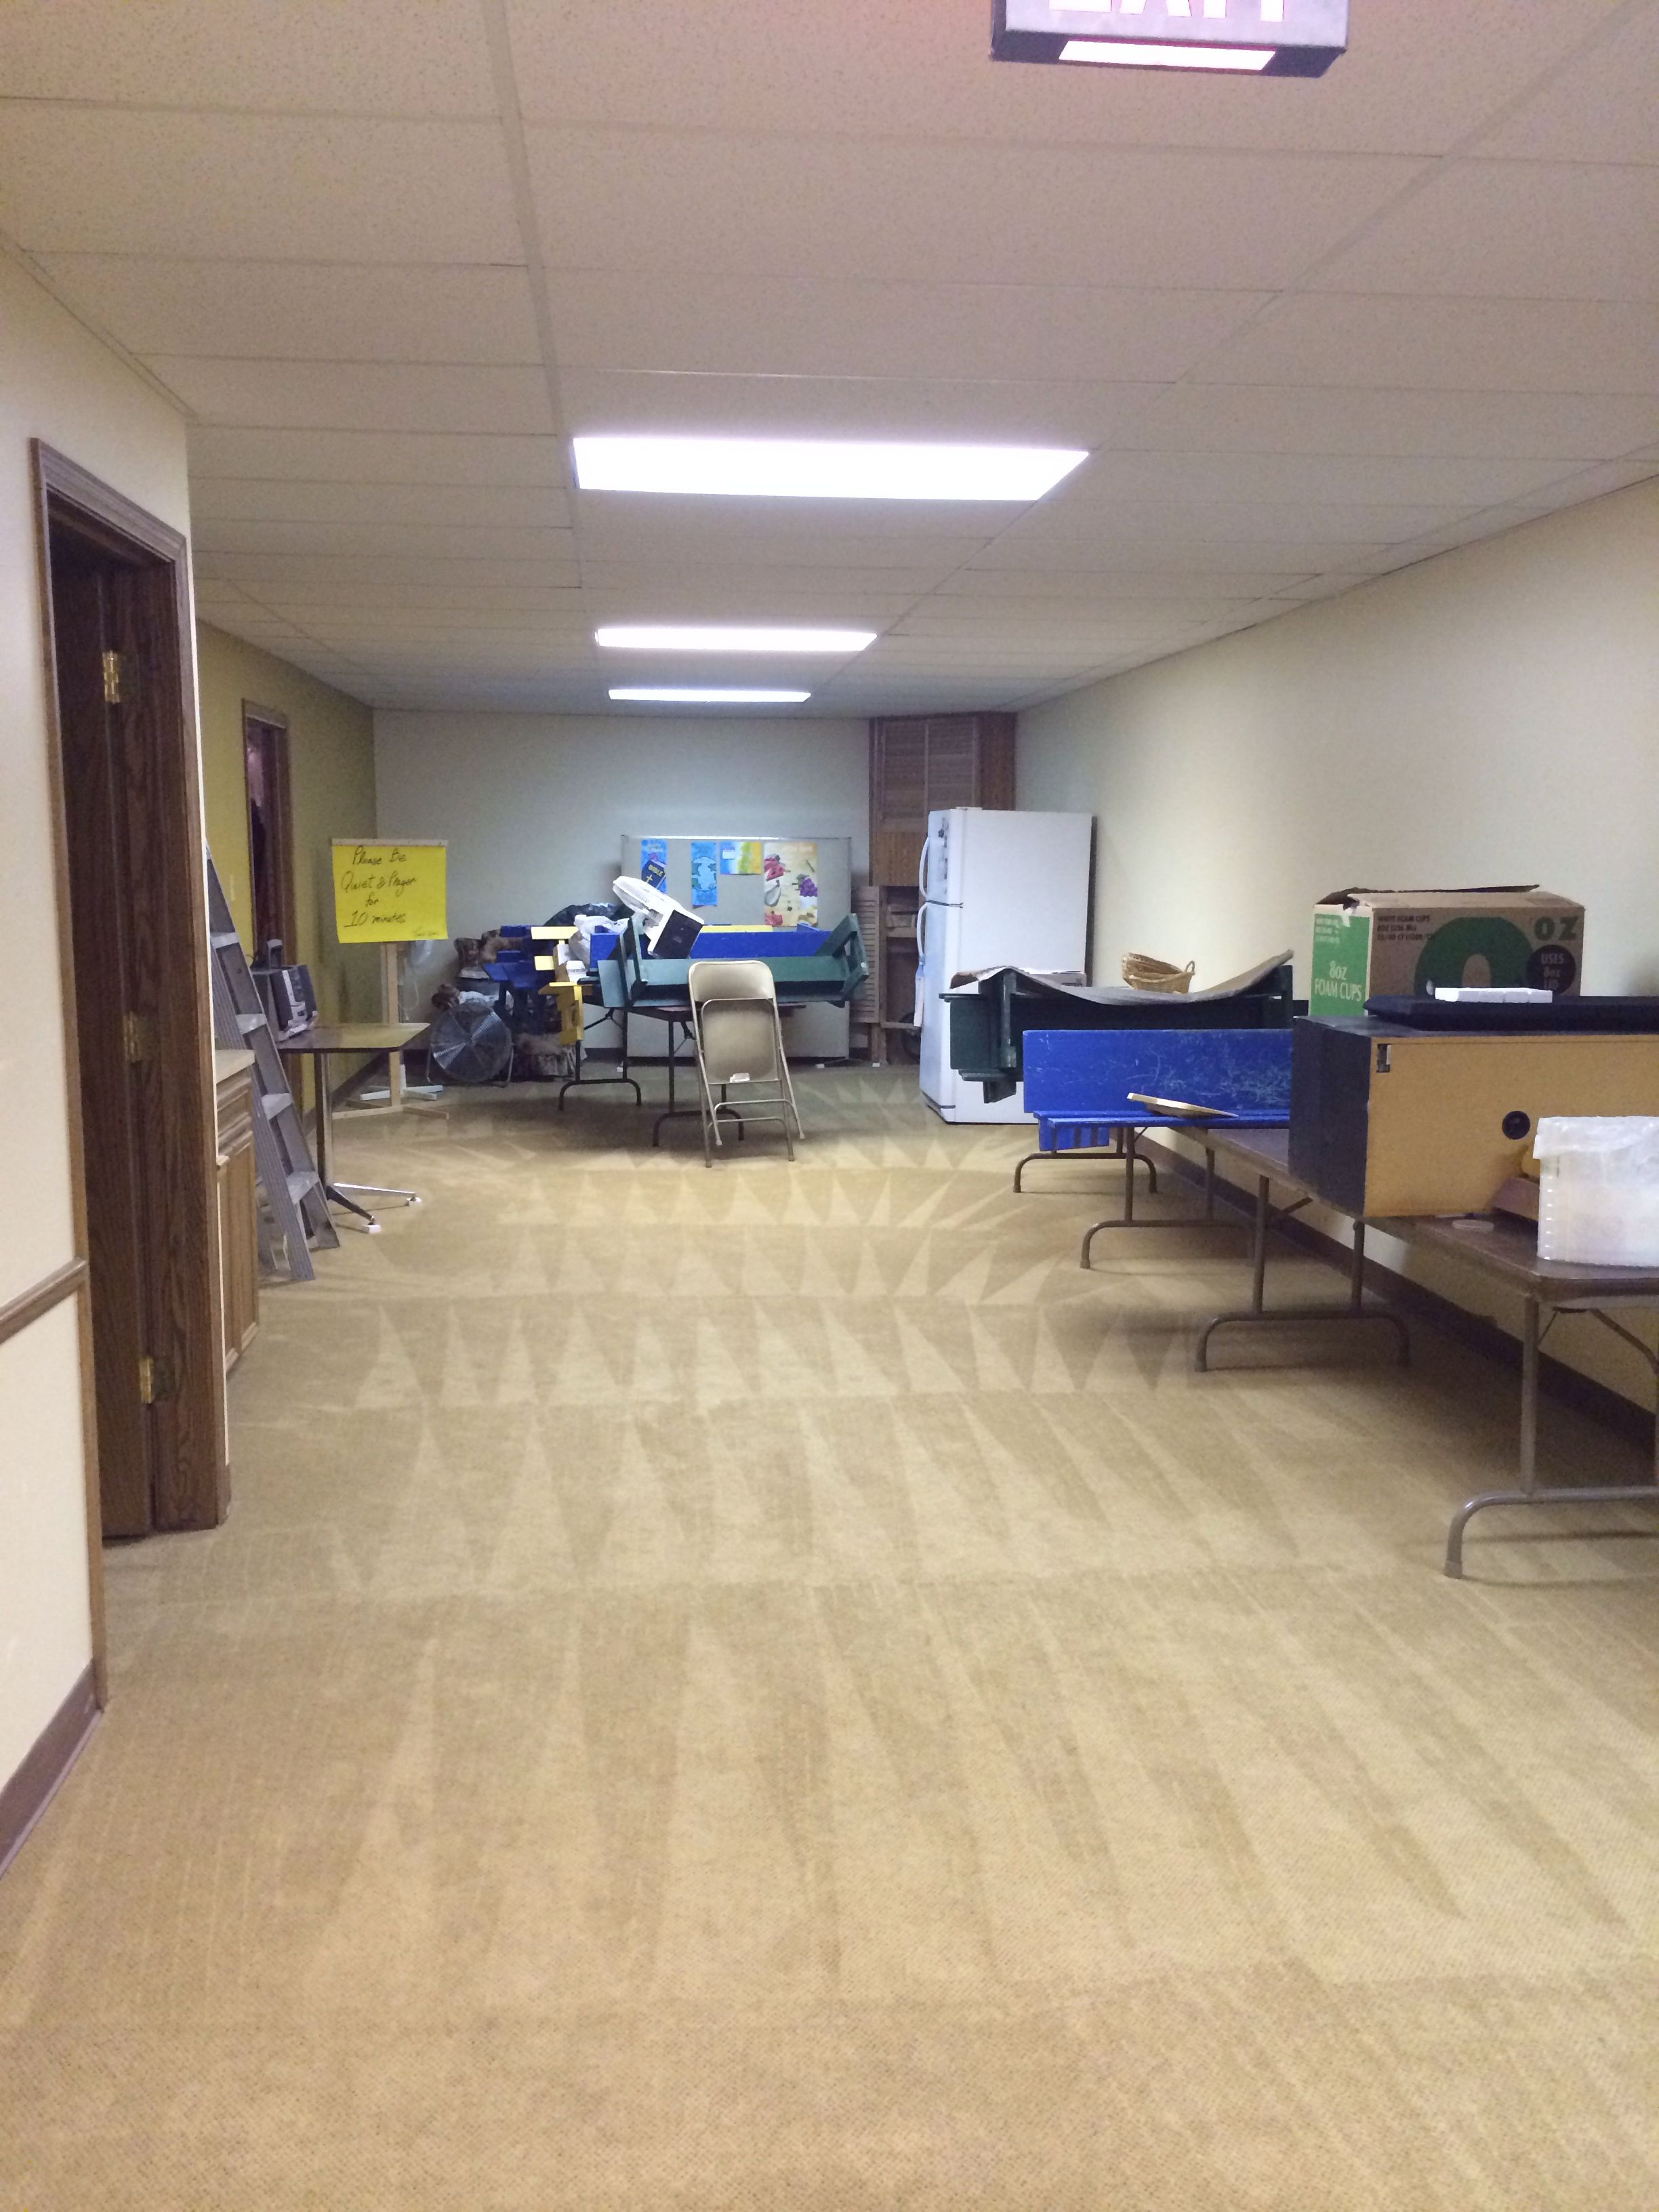 Recovery Room Design: Water Damage In A Church. This Pic Shows All The Repair